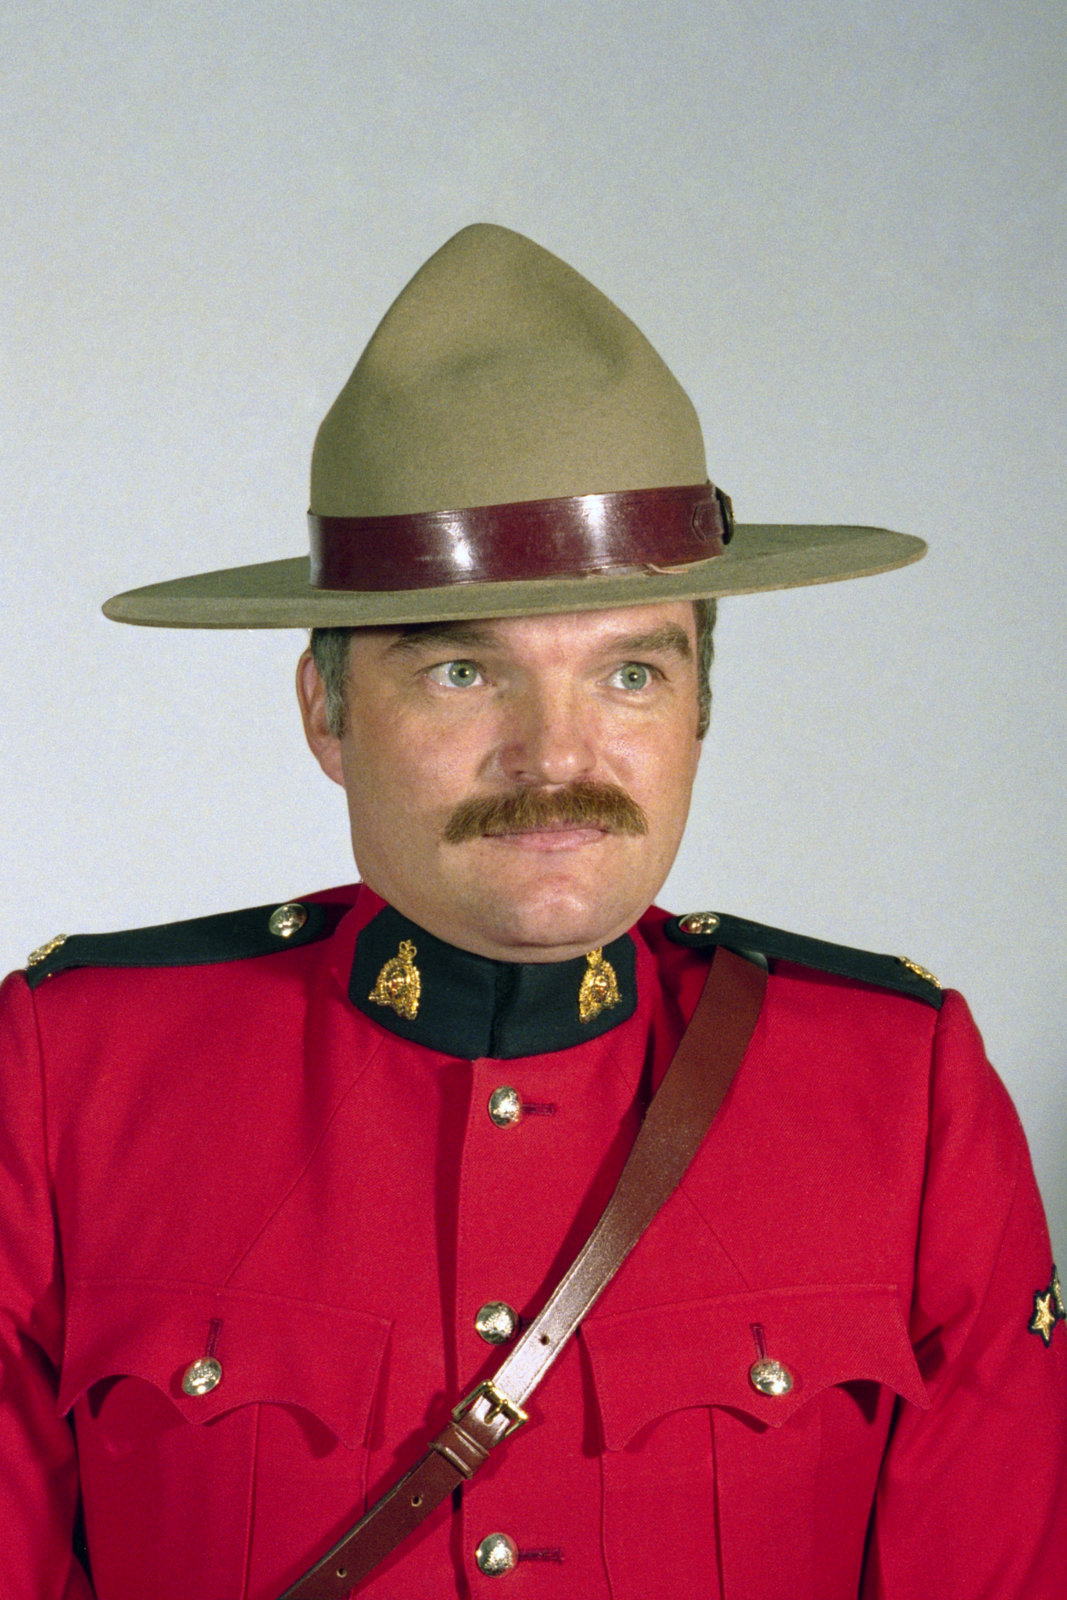 Sergeant Edwin Michael Mobley – © Her Majesty the Queen in Right of Canada as represented by the Royal Canadian Mounted Police